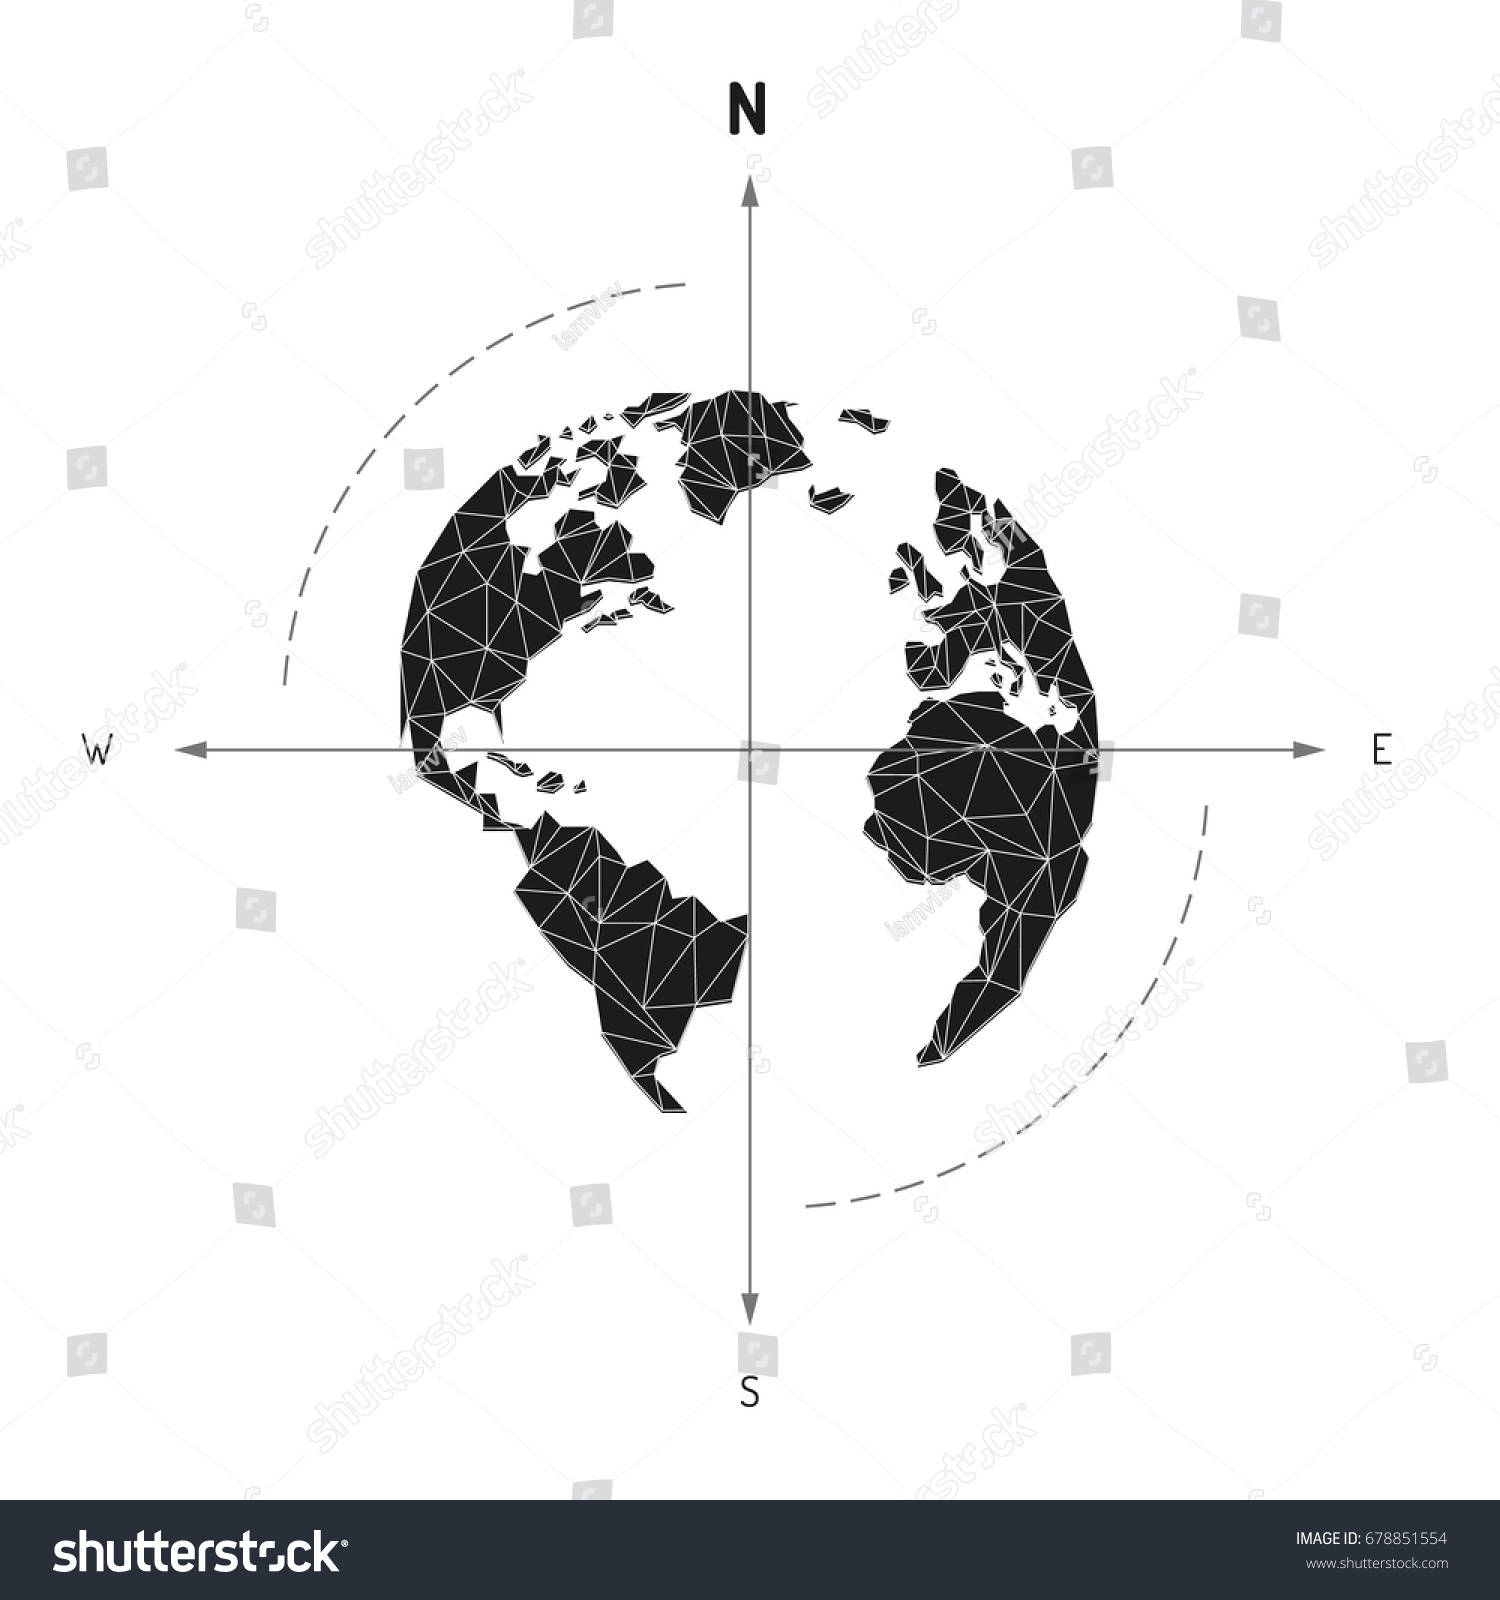 Globe world map compass arrow nautical vectores en stock 678851554 globe world map compass arrow nautical travel america europe atlantic ocean lowpoly triangular gumiabroncs Choice Image